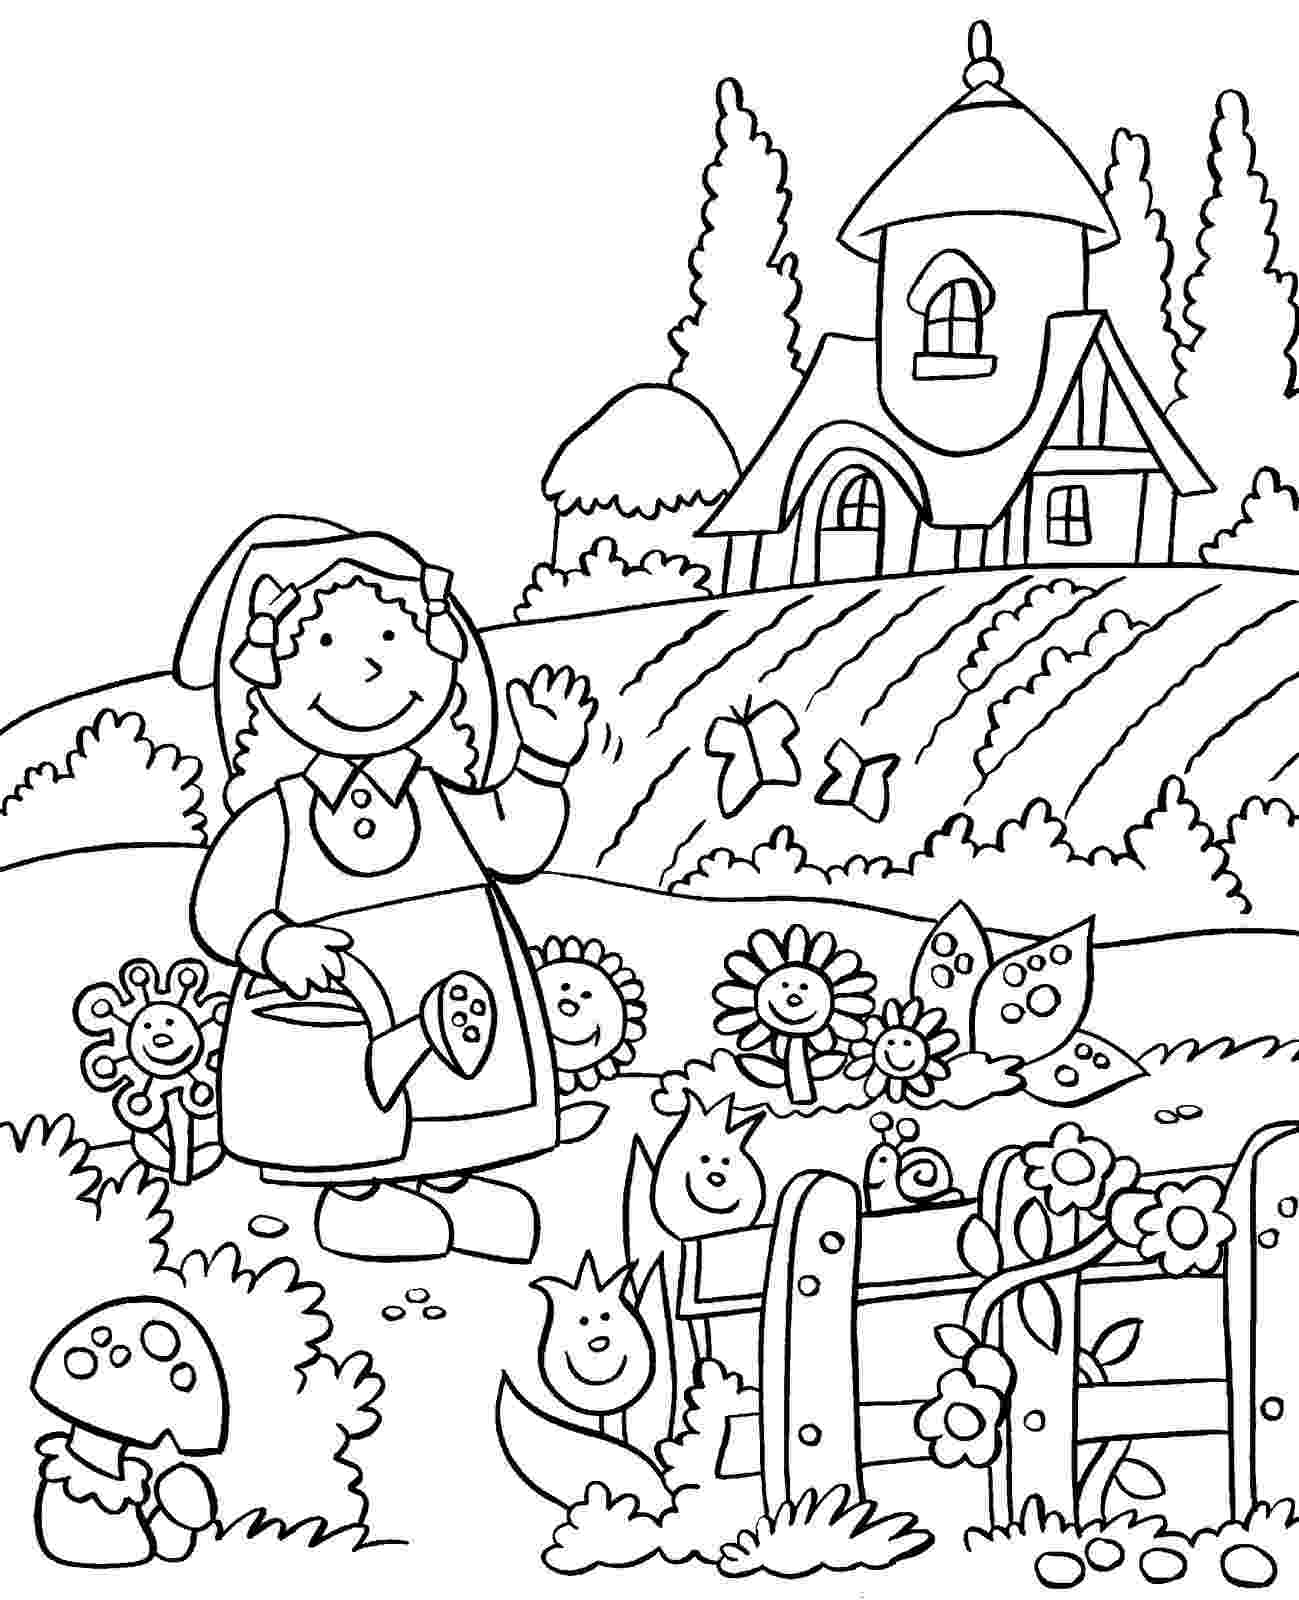 gardening colouring sheets simple garden coloring pages getcoloringpagescom sheets colouring gardening